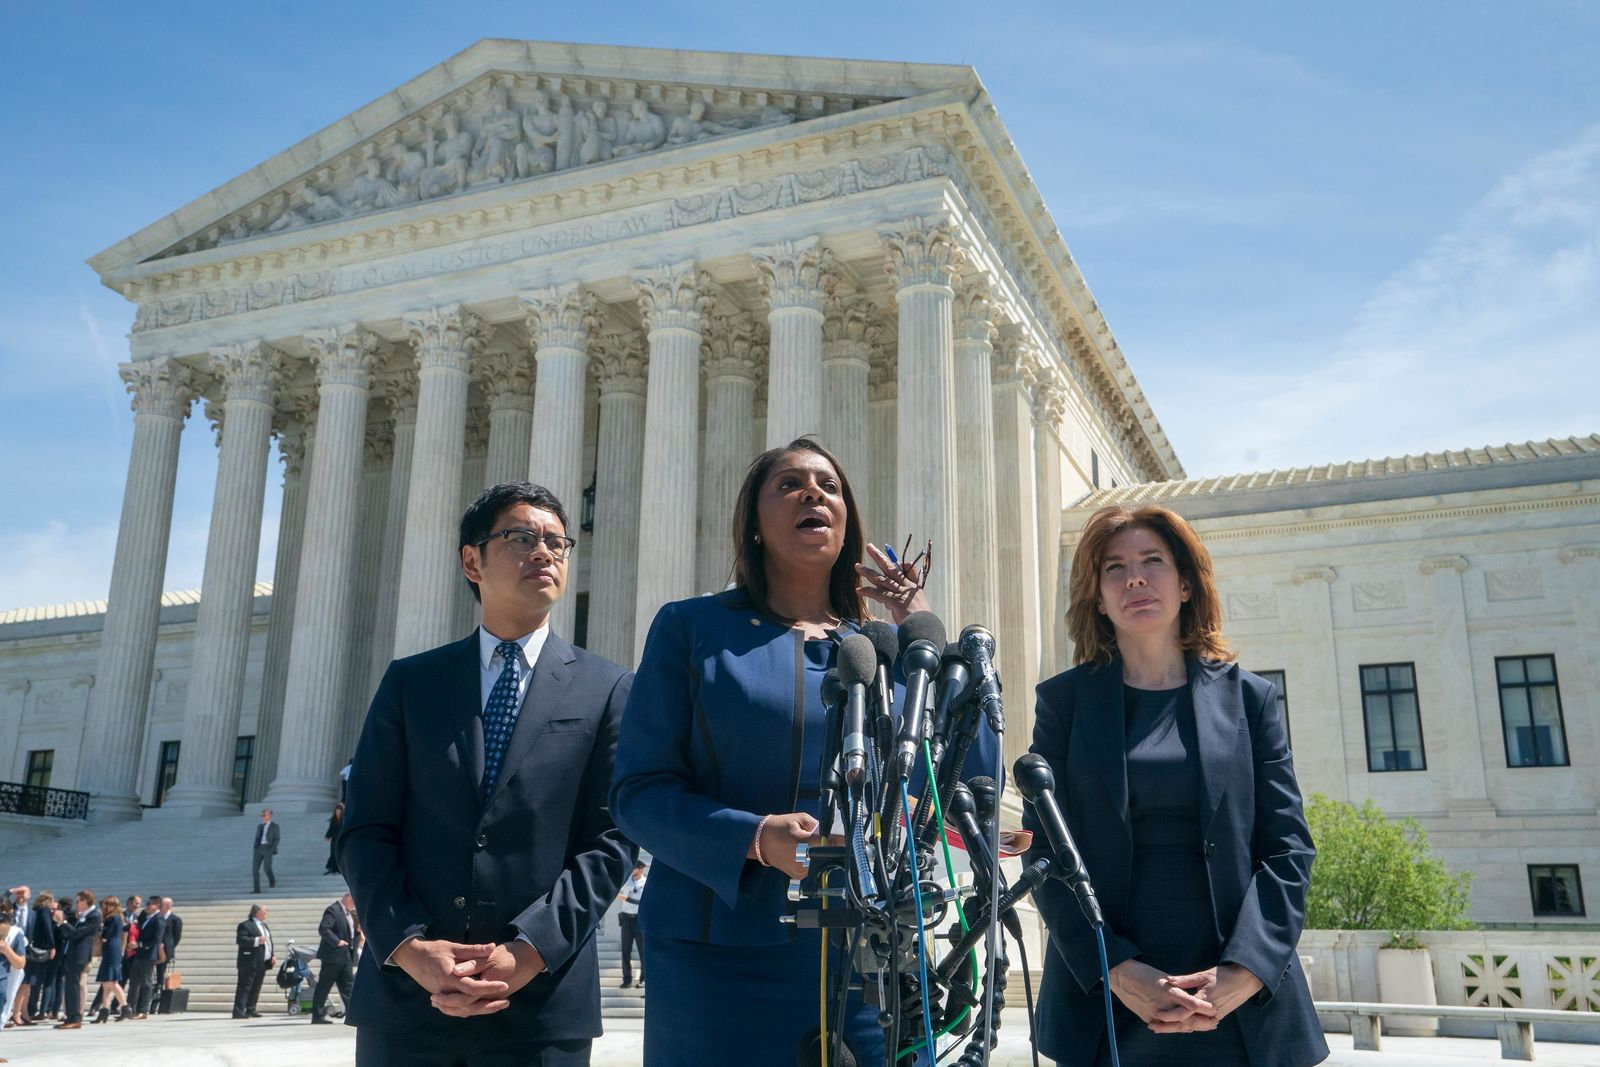 New York State Attorney General Letitia James, center, flanked by Dale Ho, left, an attorney for the American Civil Liberties Union, and New York City Census Director Julie Menin, speaks to reporters after the Supreme Court heard arguments over the Trump administration's plan to ask about citizenship on the 2020 census, in Washington, Tuesday, April 23, 2019. (AP Photo/J. Scott Applewhite)